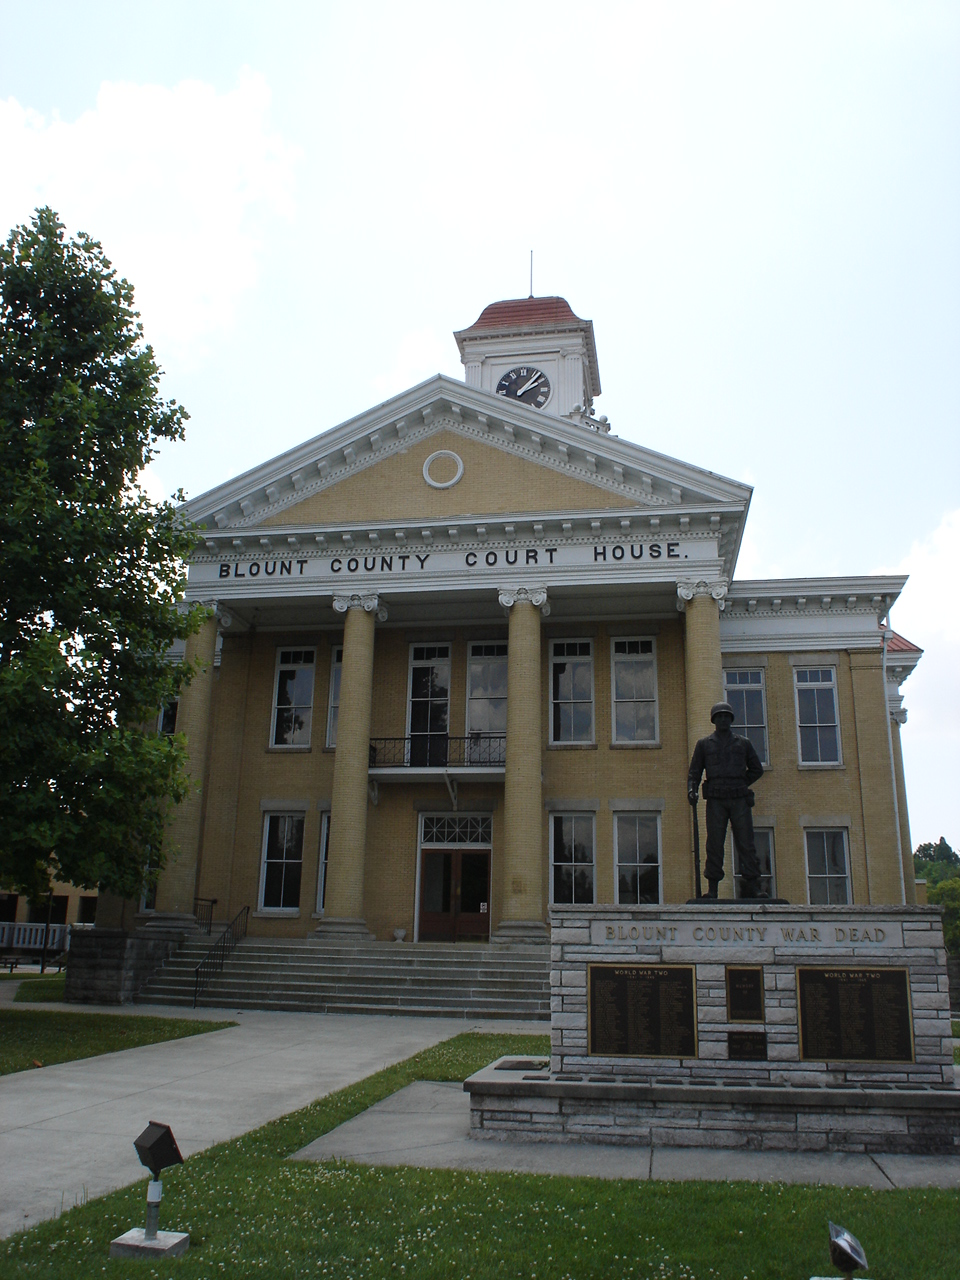 Blount County Court House